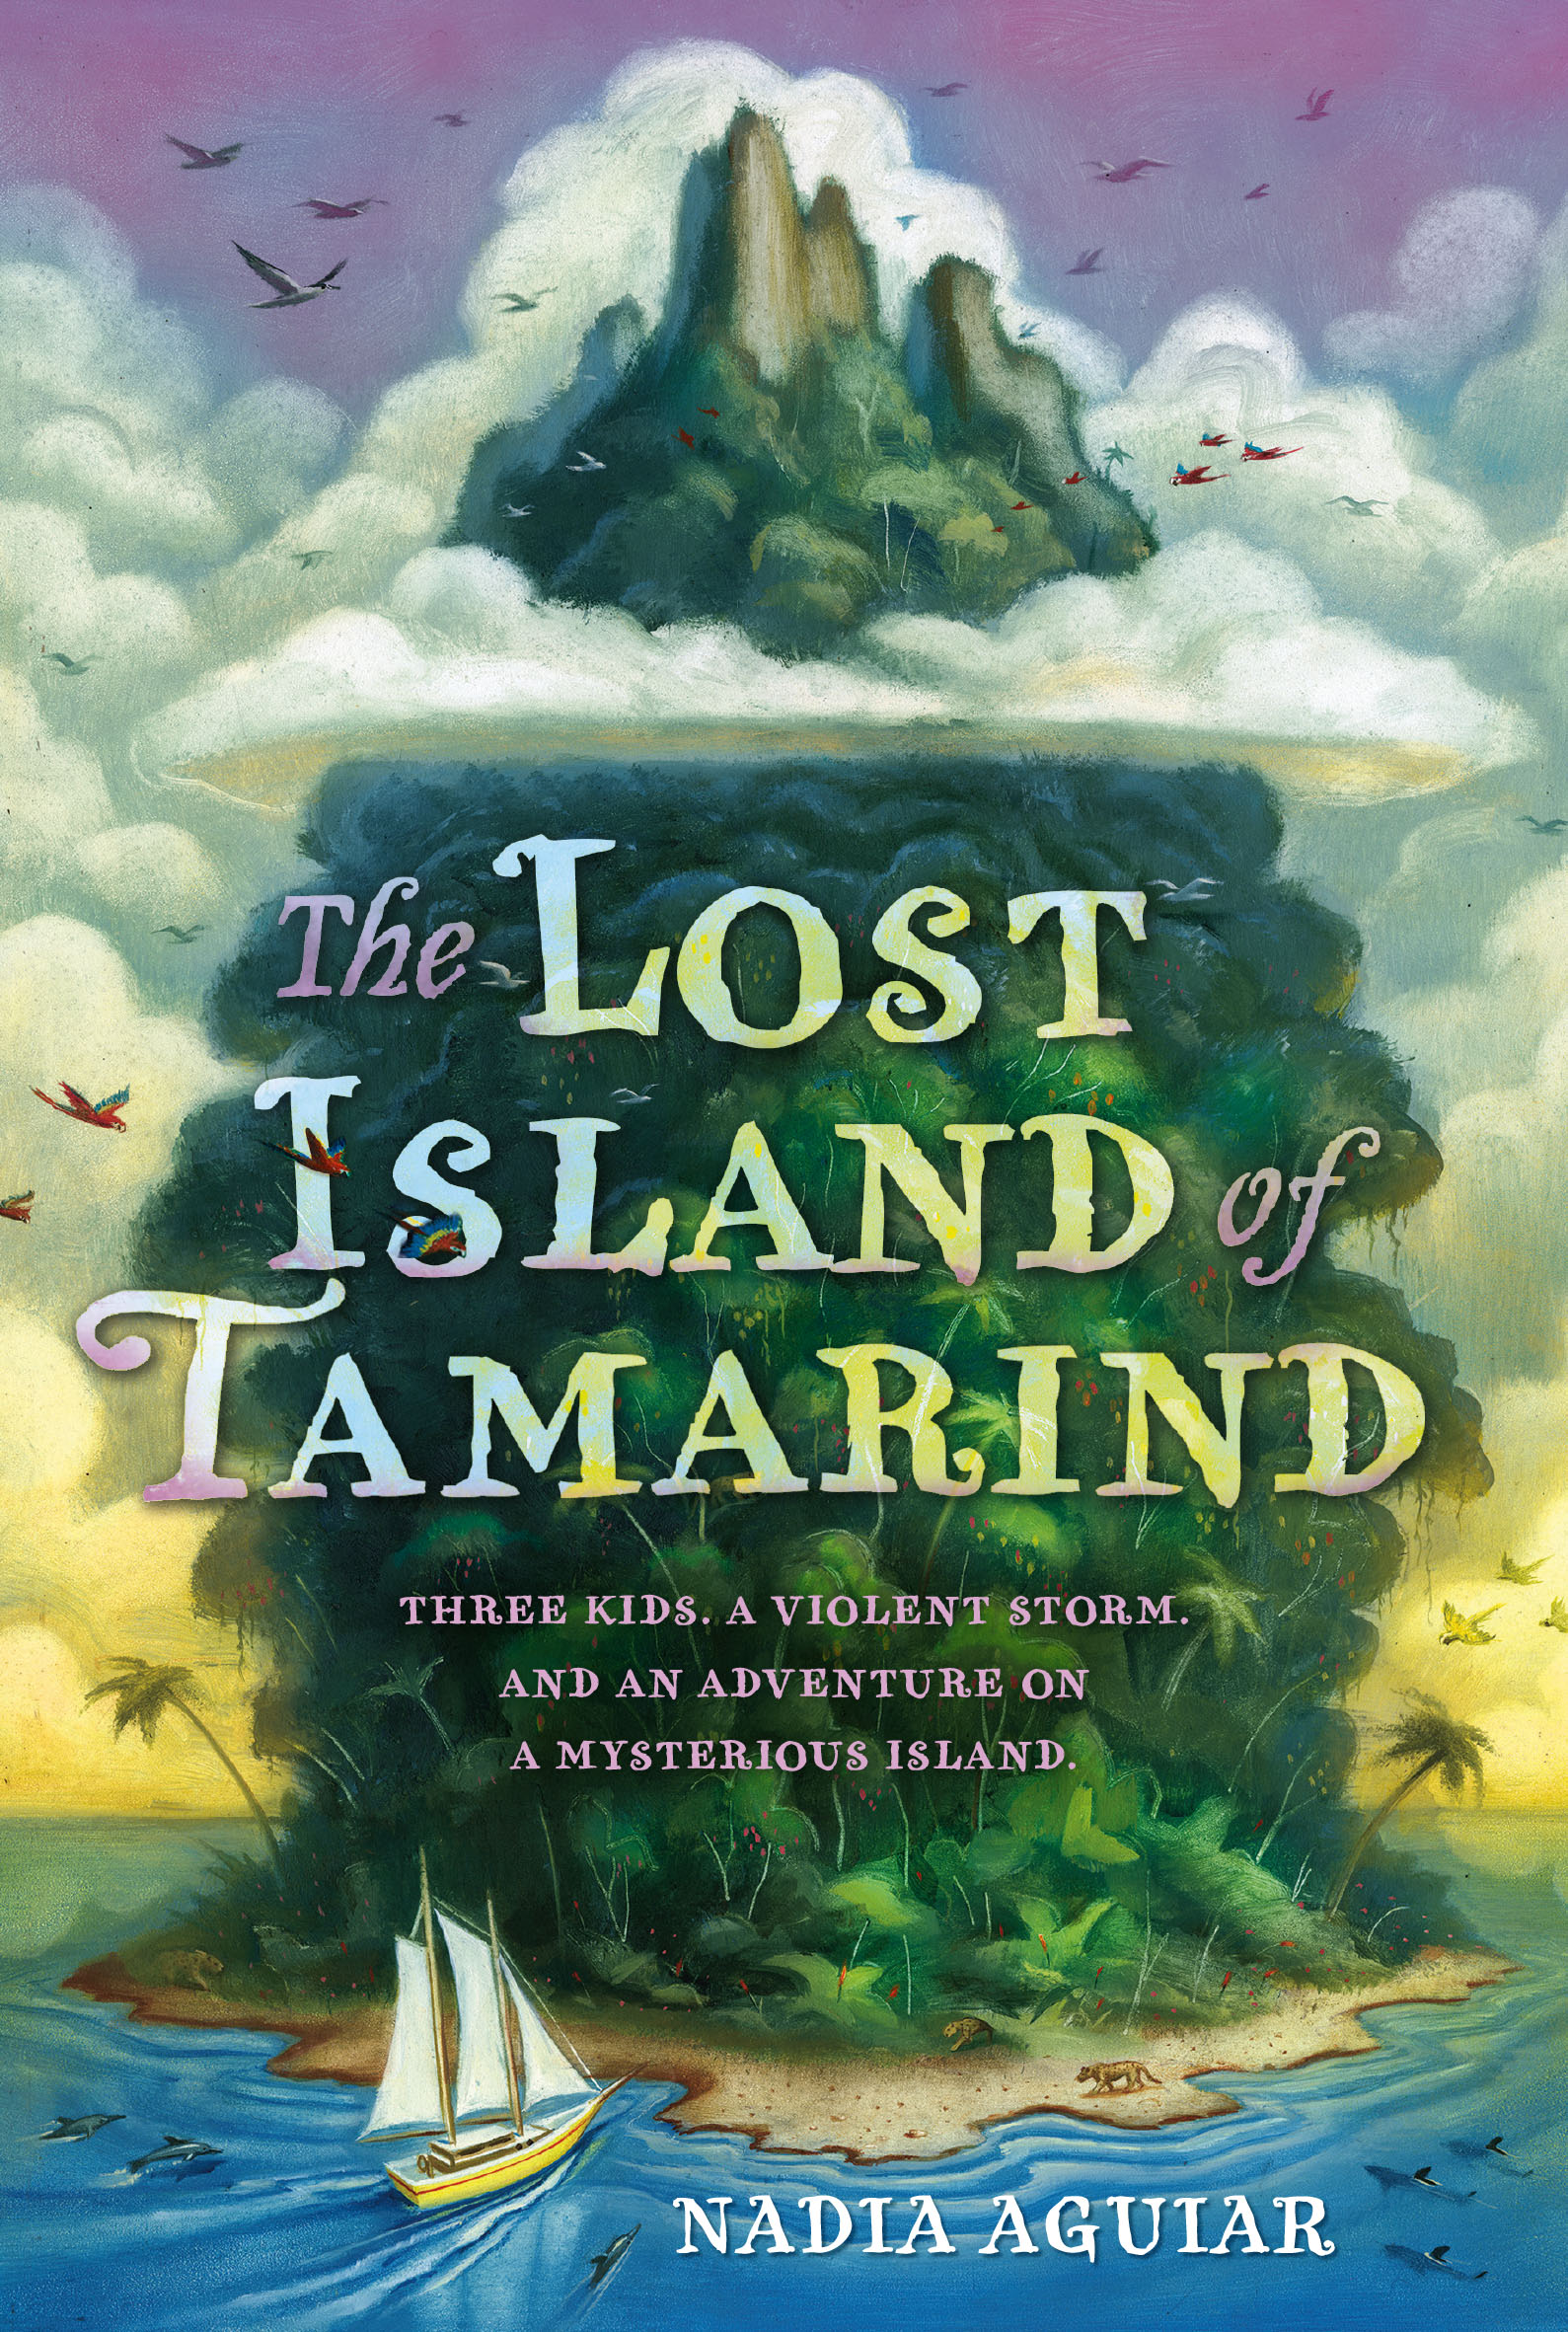 The Lost Island of Tamarind.jpg